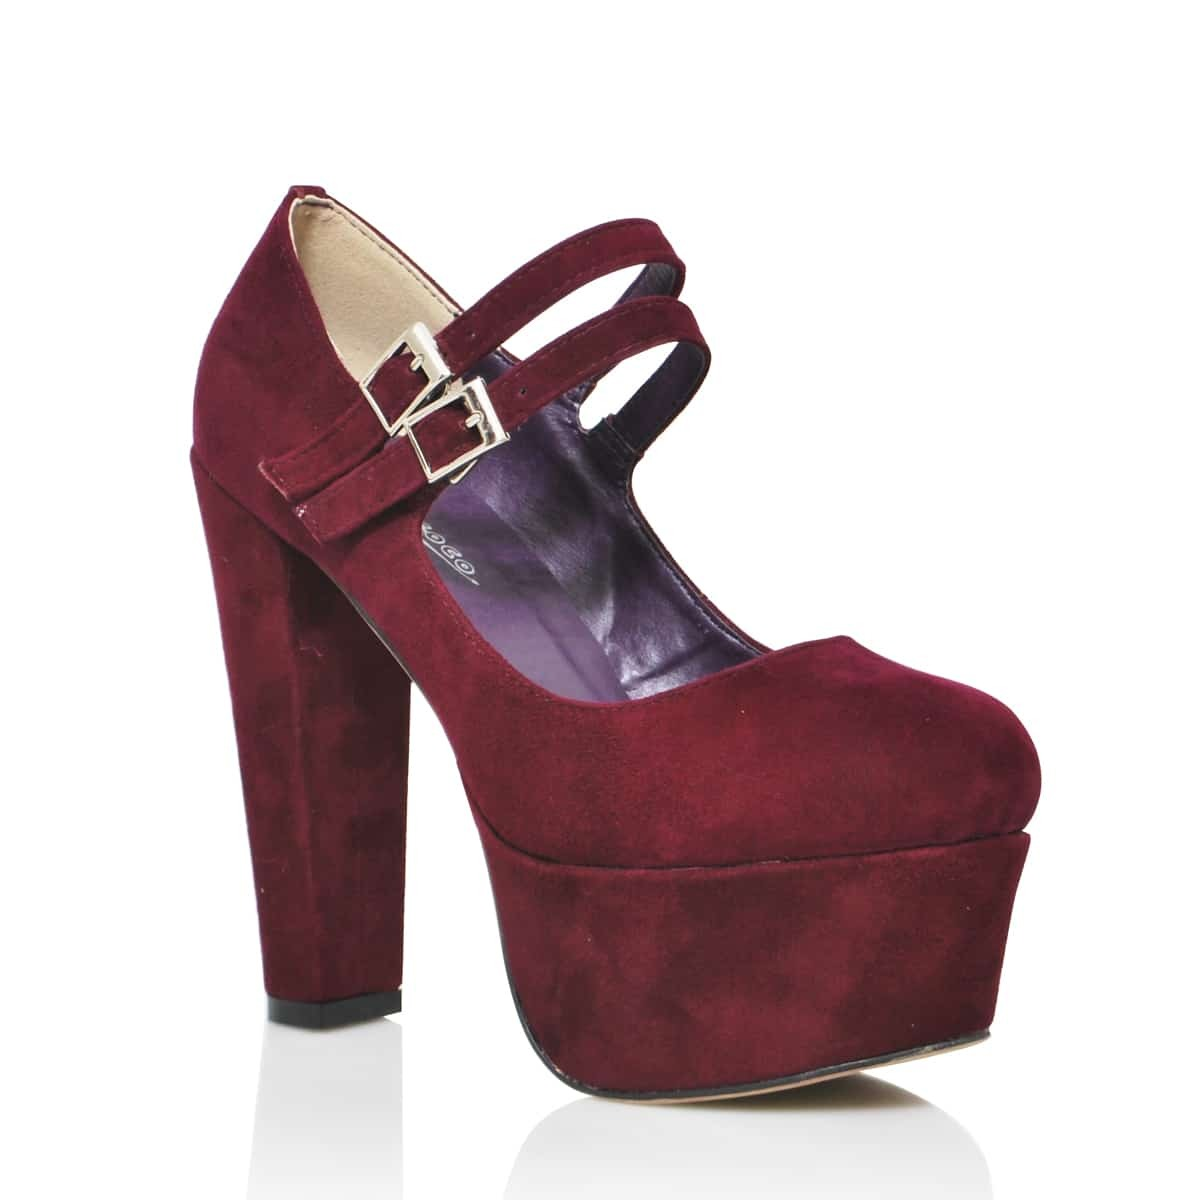 Red wine Suede High Heel Platform Mary-Jane Pump -SheIn(Sheinside)